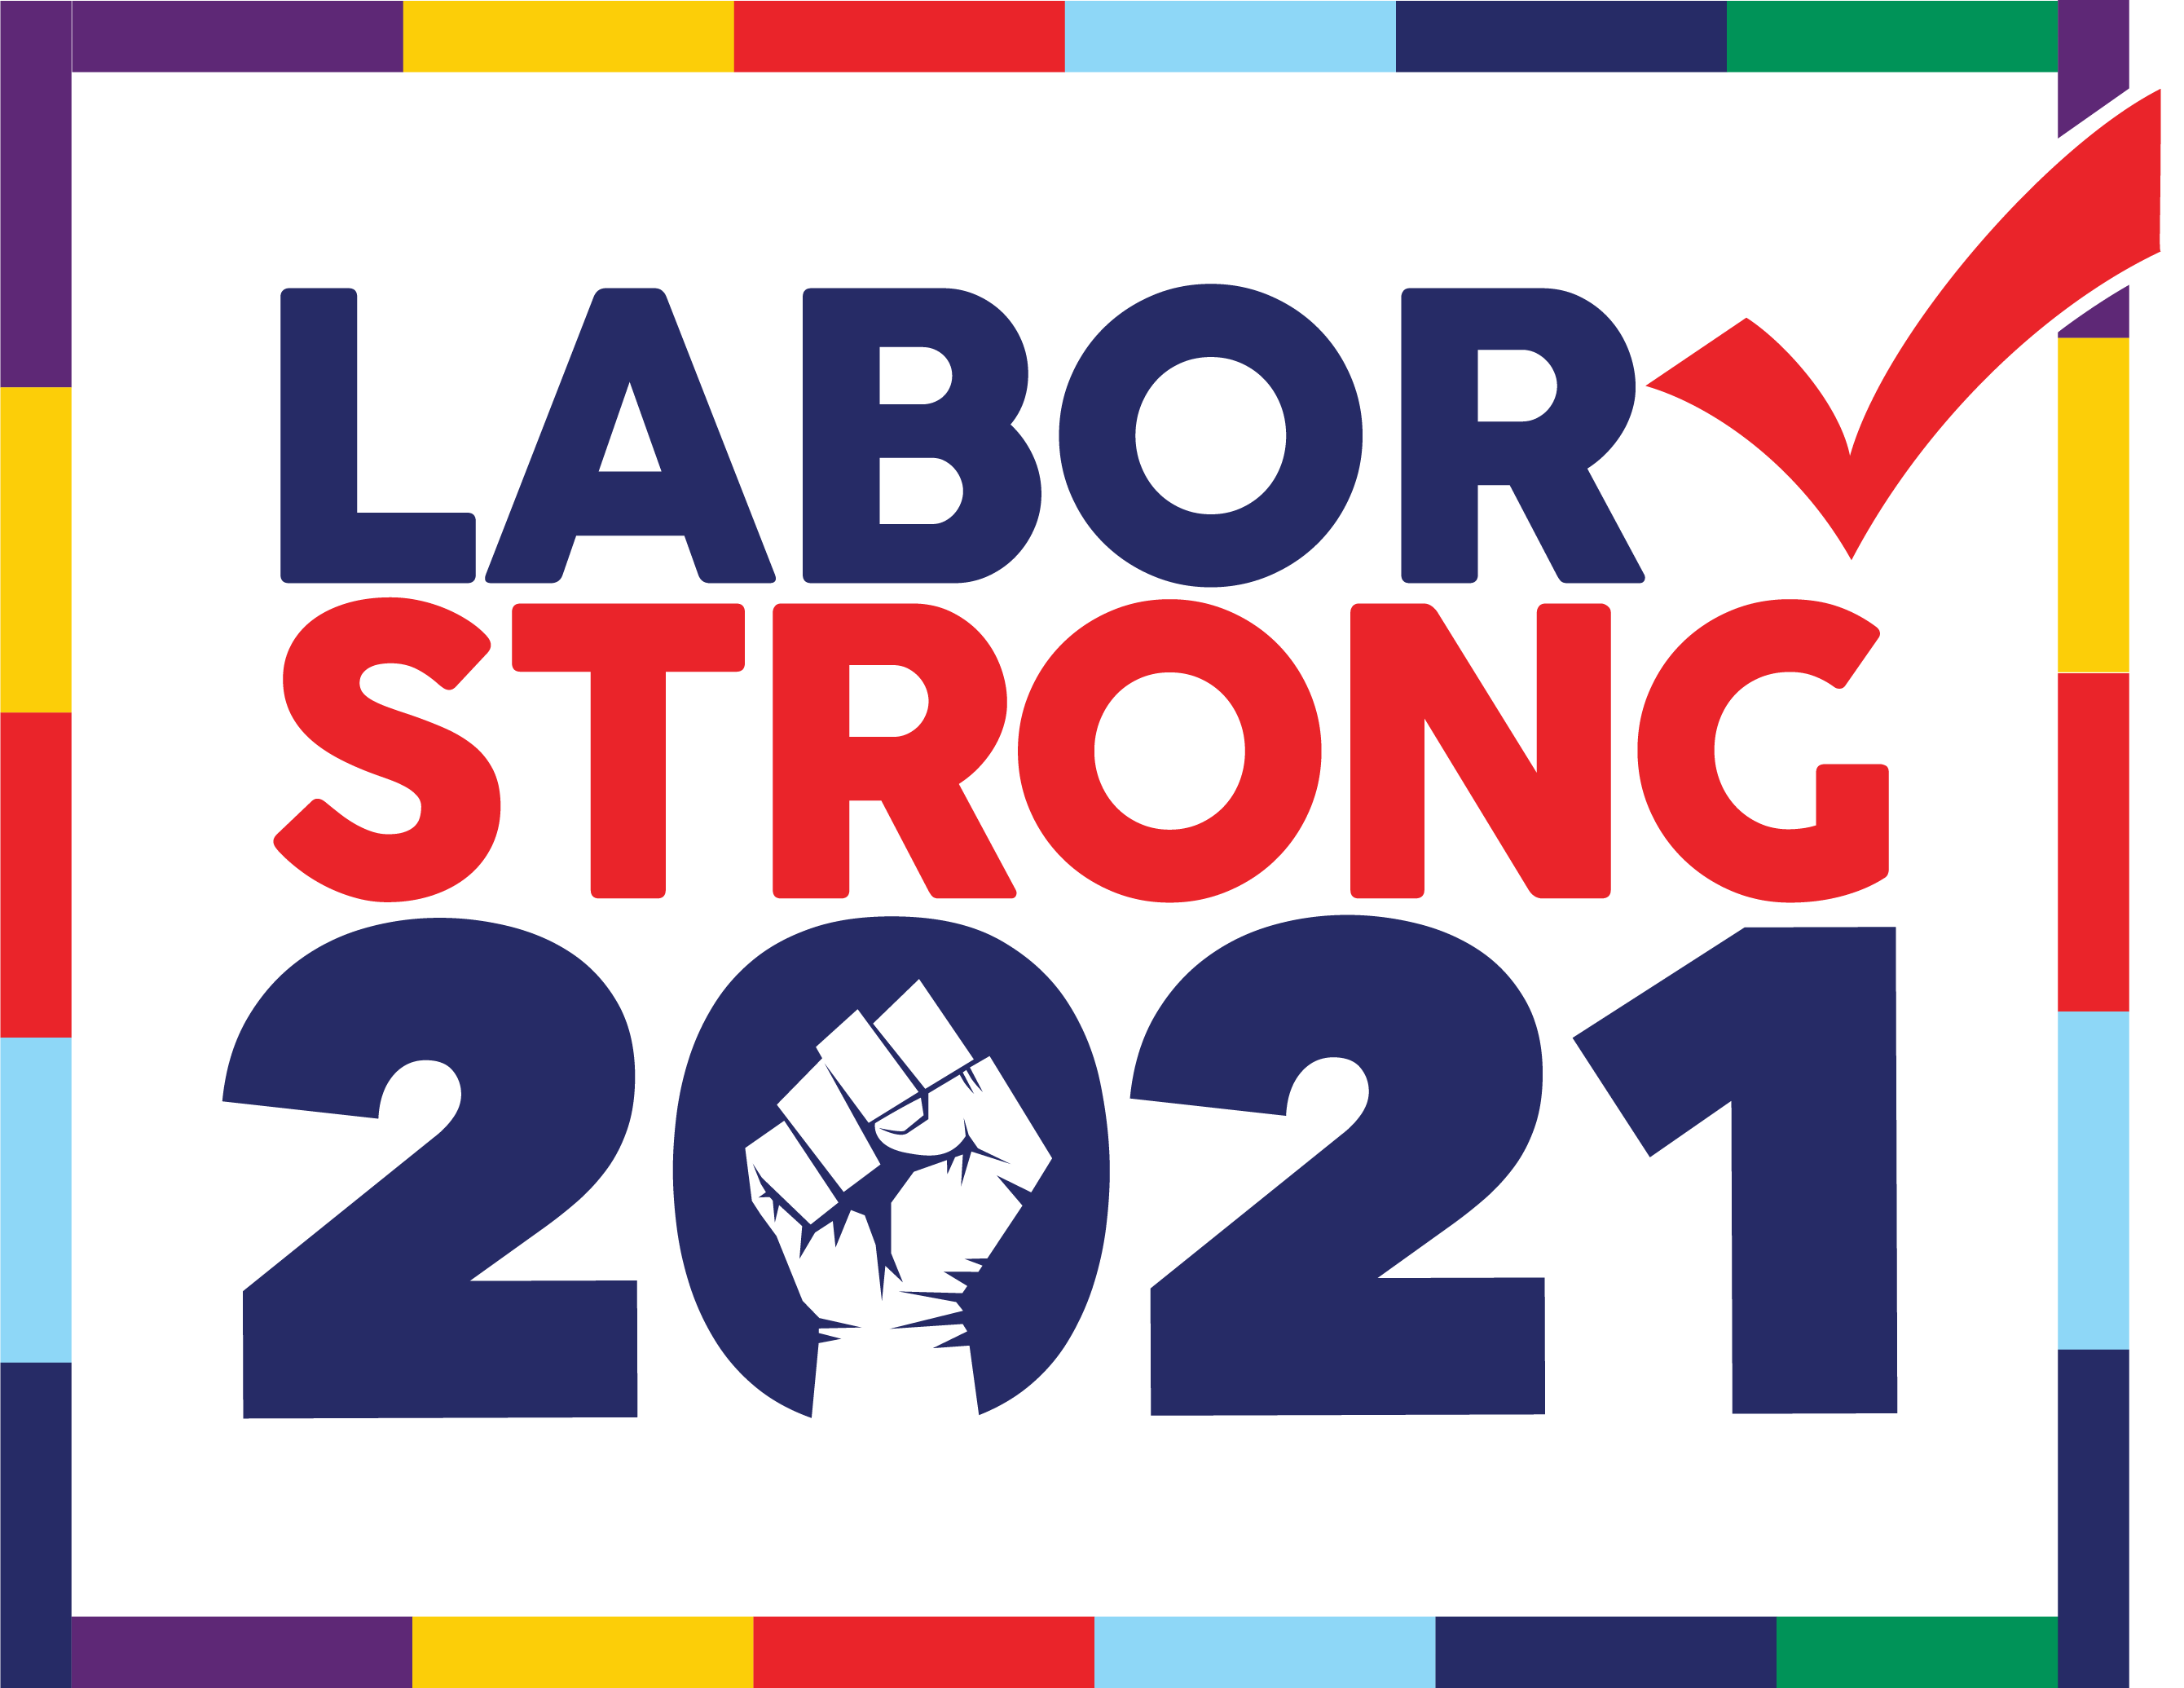 NYC Labor Strong 2021 Coalition